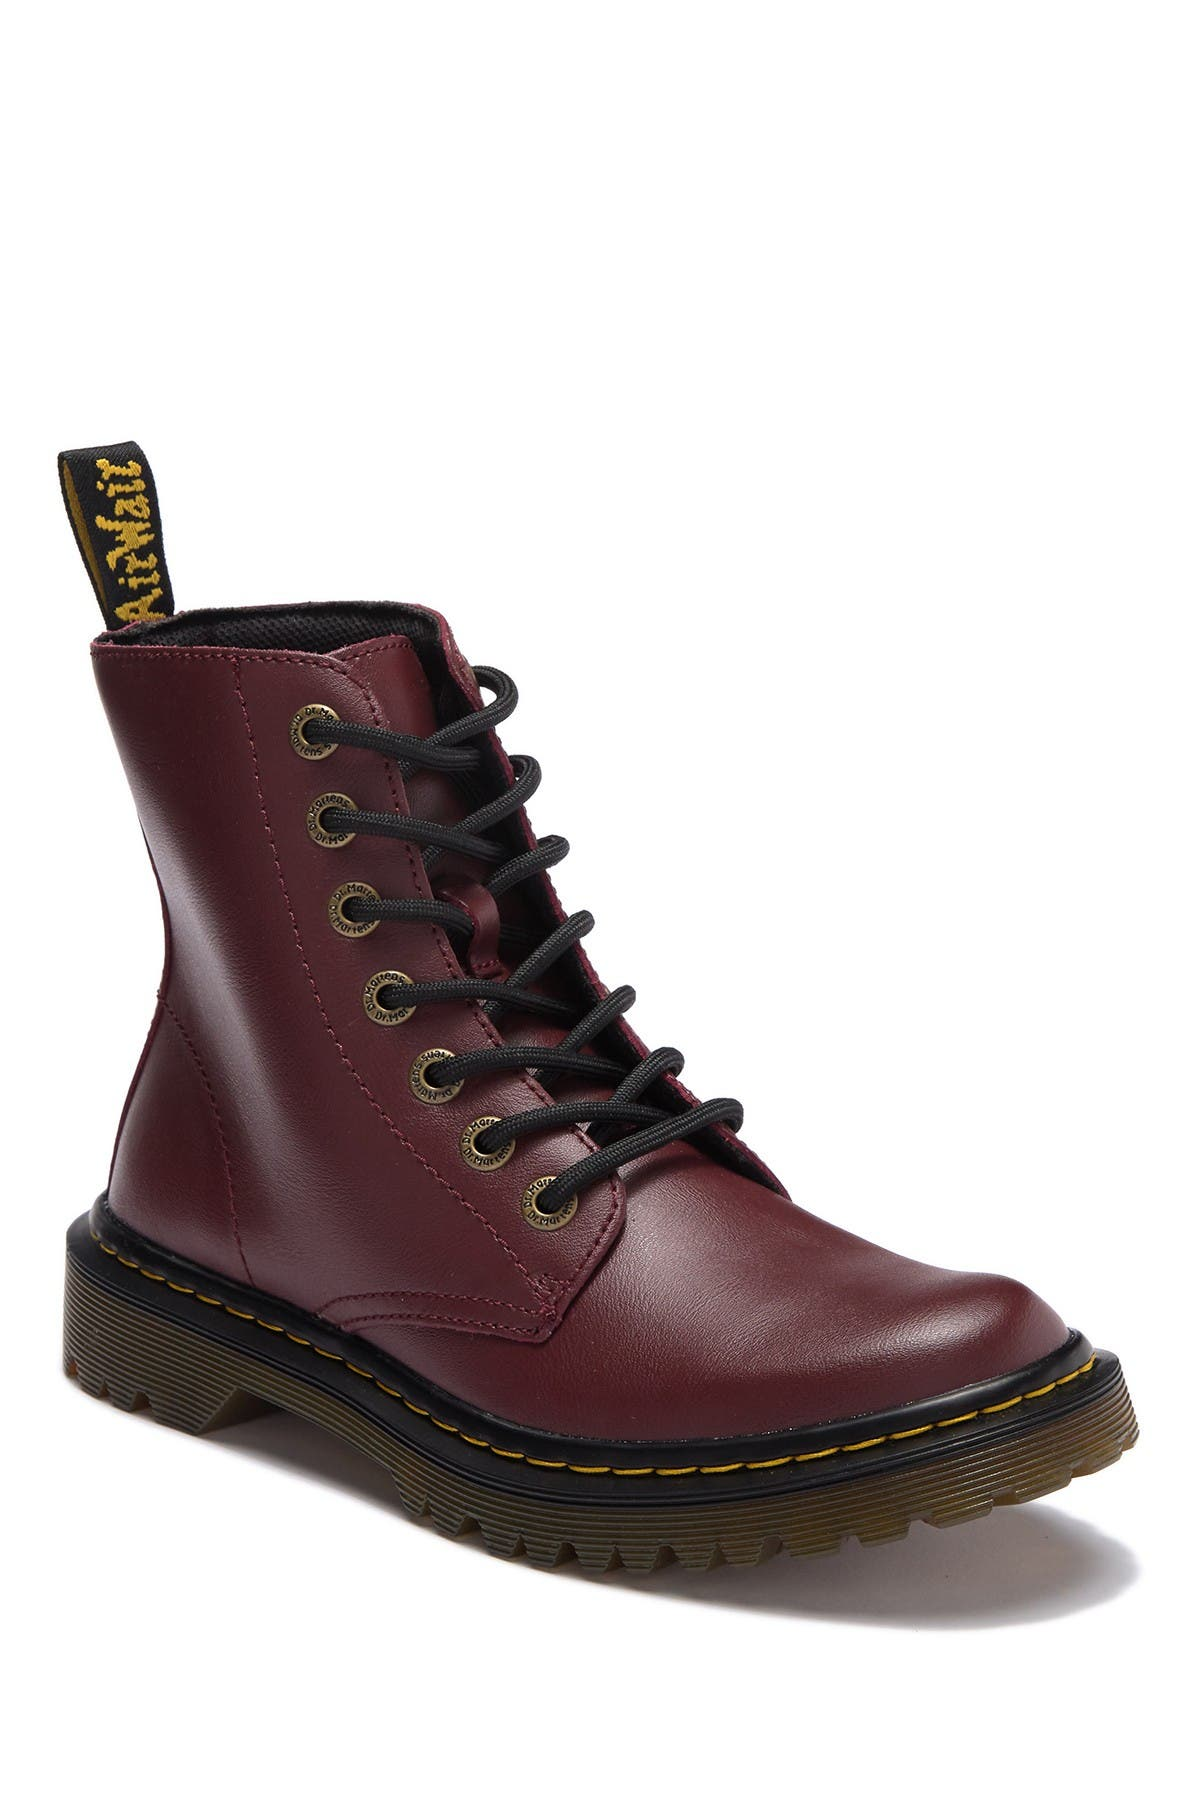 Image of Dr. Martens Luana Leather Lace-Up Boot